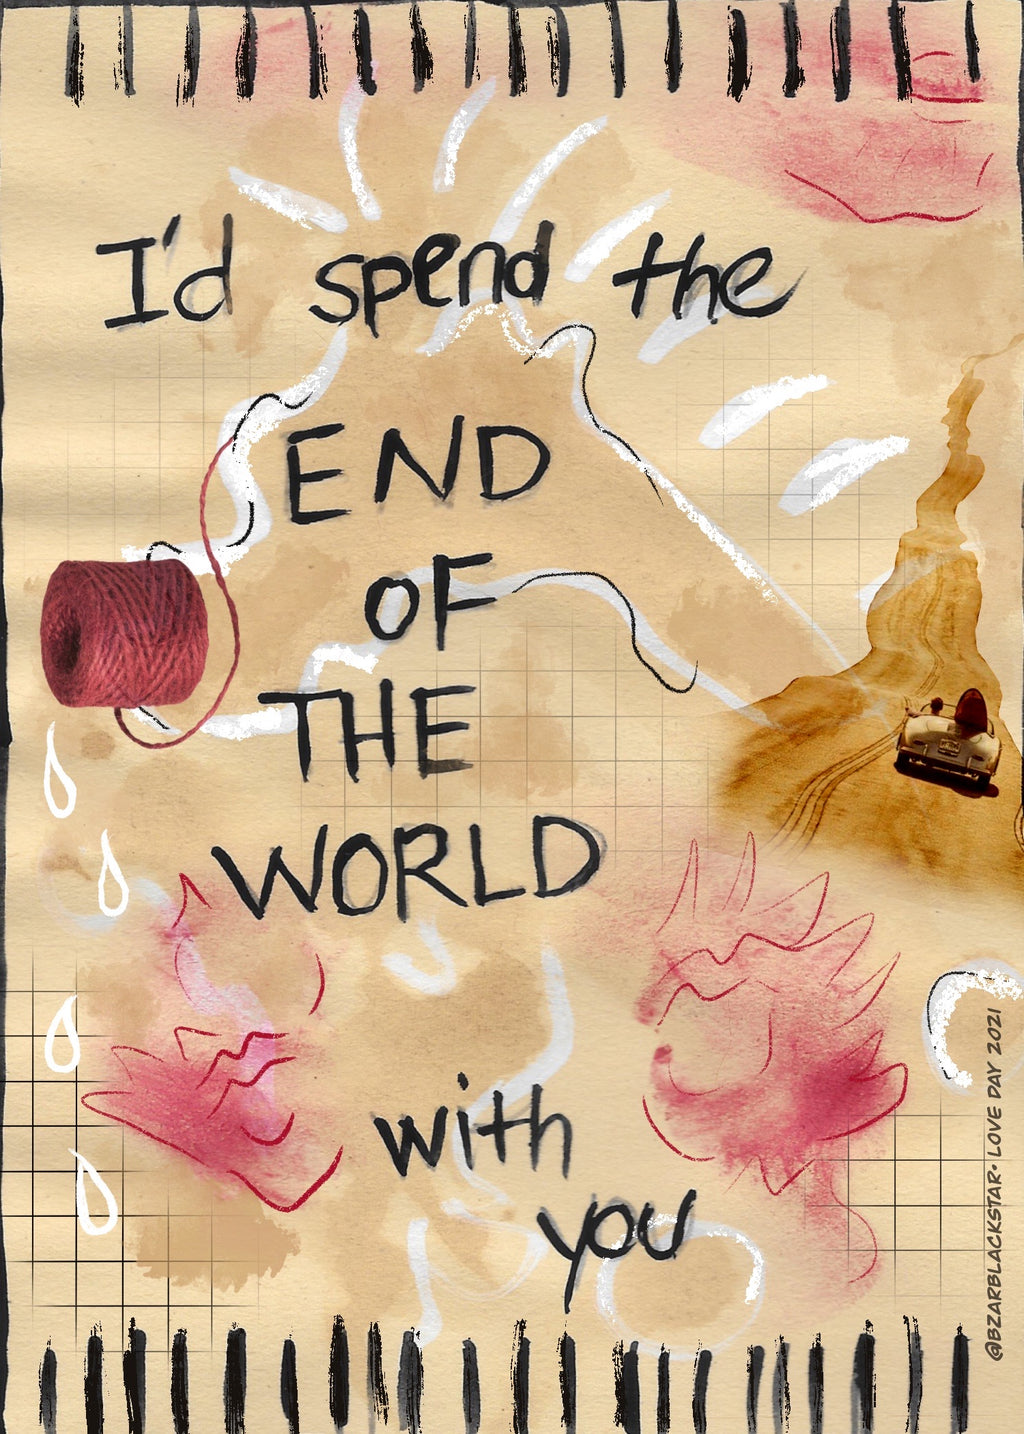 I'd Spend The End of The World With You